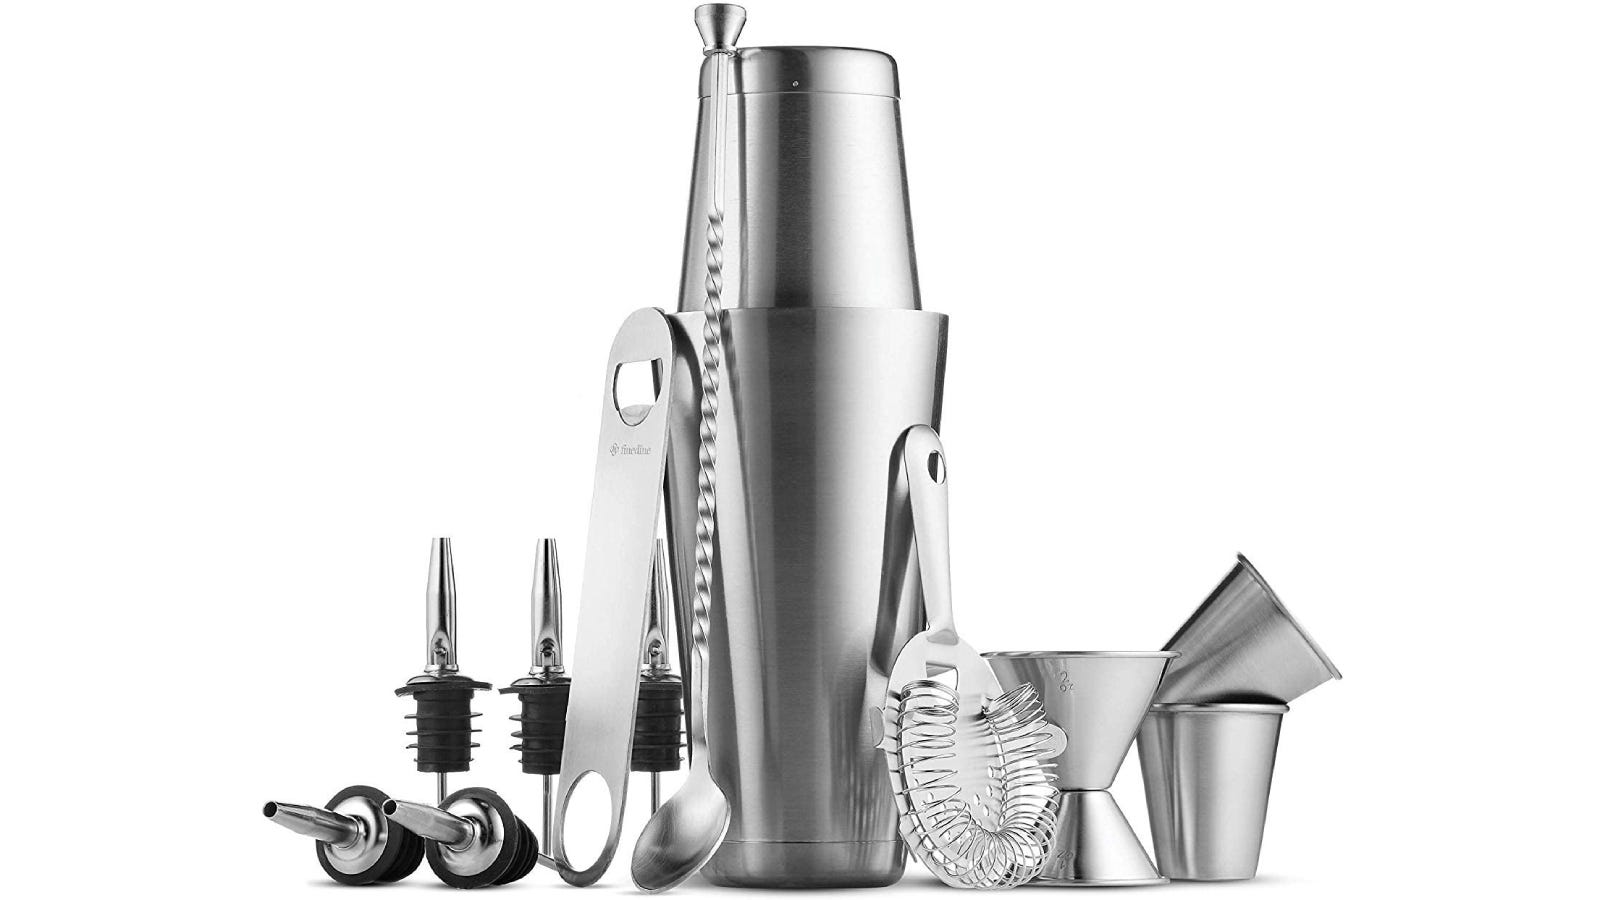 silver Boston cocktail shaker with bar tool set that includes strainer, spoon, jigger, and pouring spouts